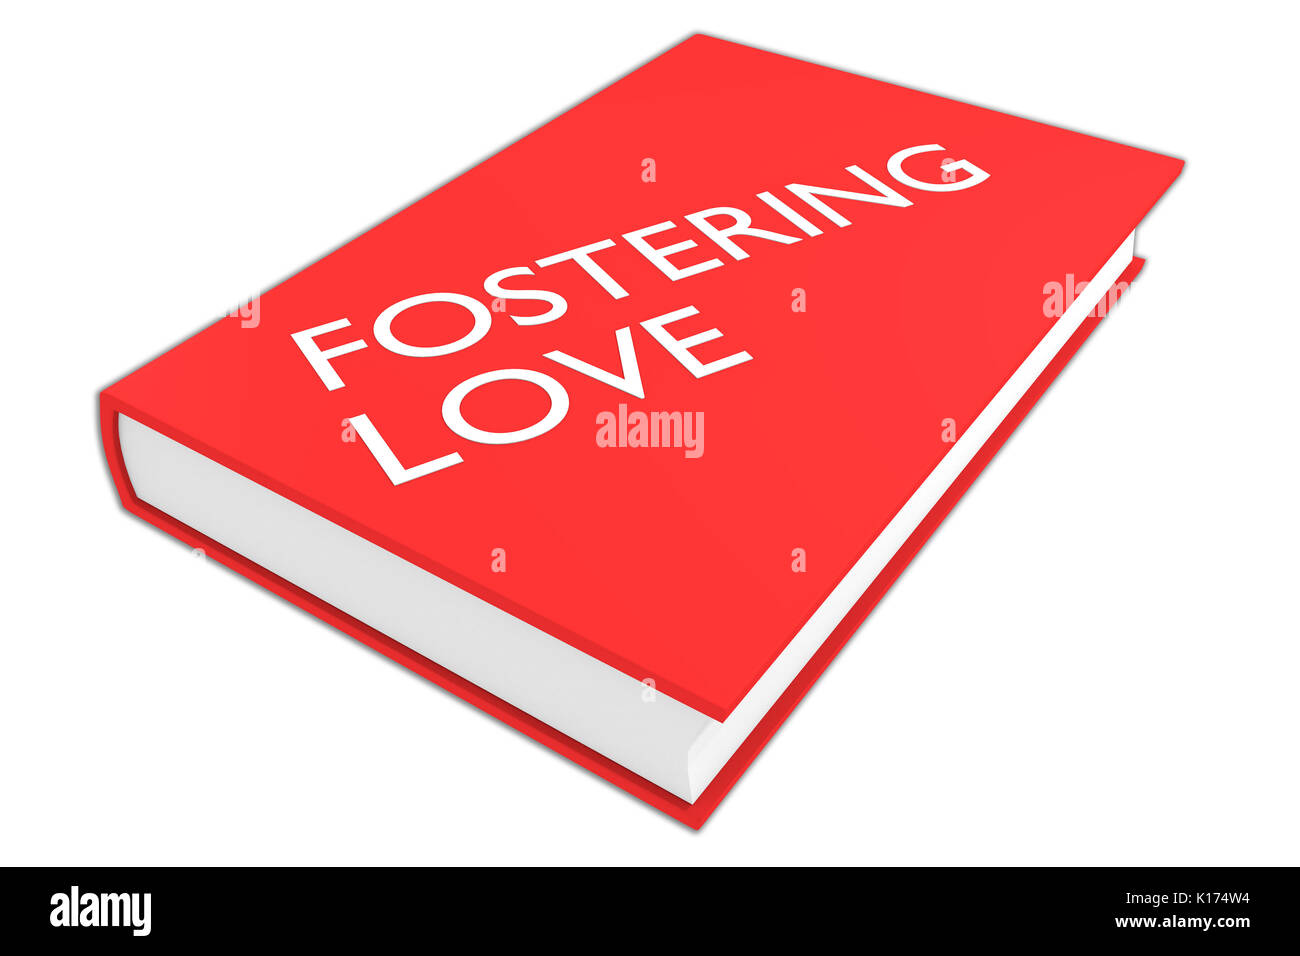 3D illustration of 'FOSTERING LOVE' script on a book, isolated on white. - Stock Image